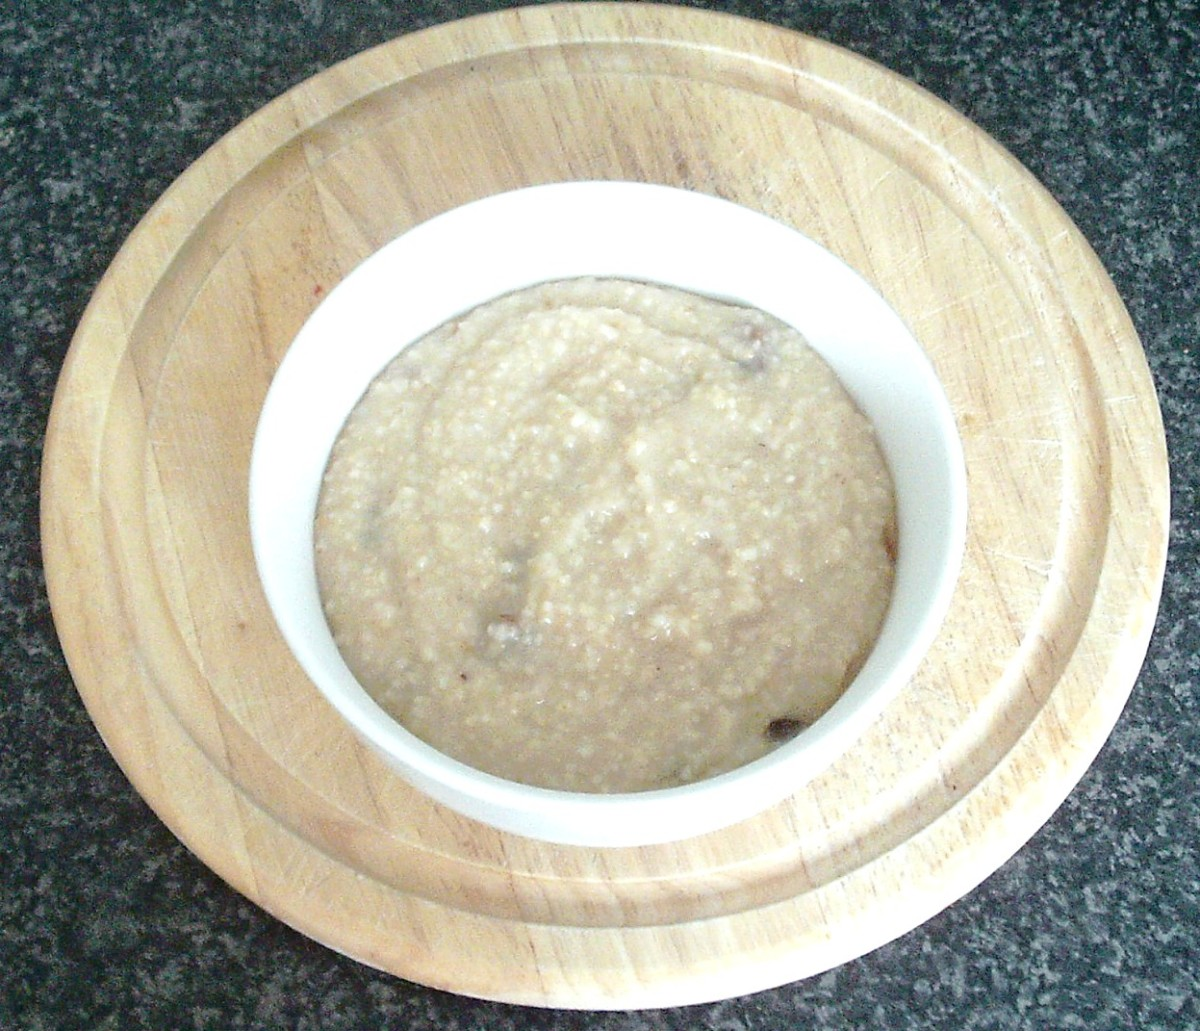 Homemade porridge, sweetened with a spoonful of mincemeat